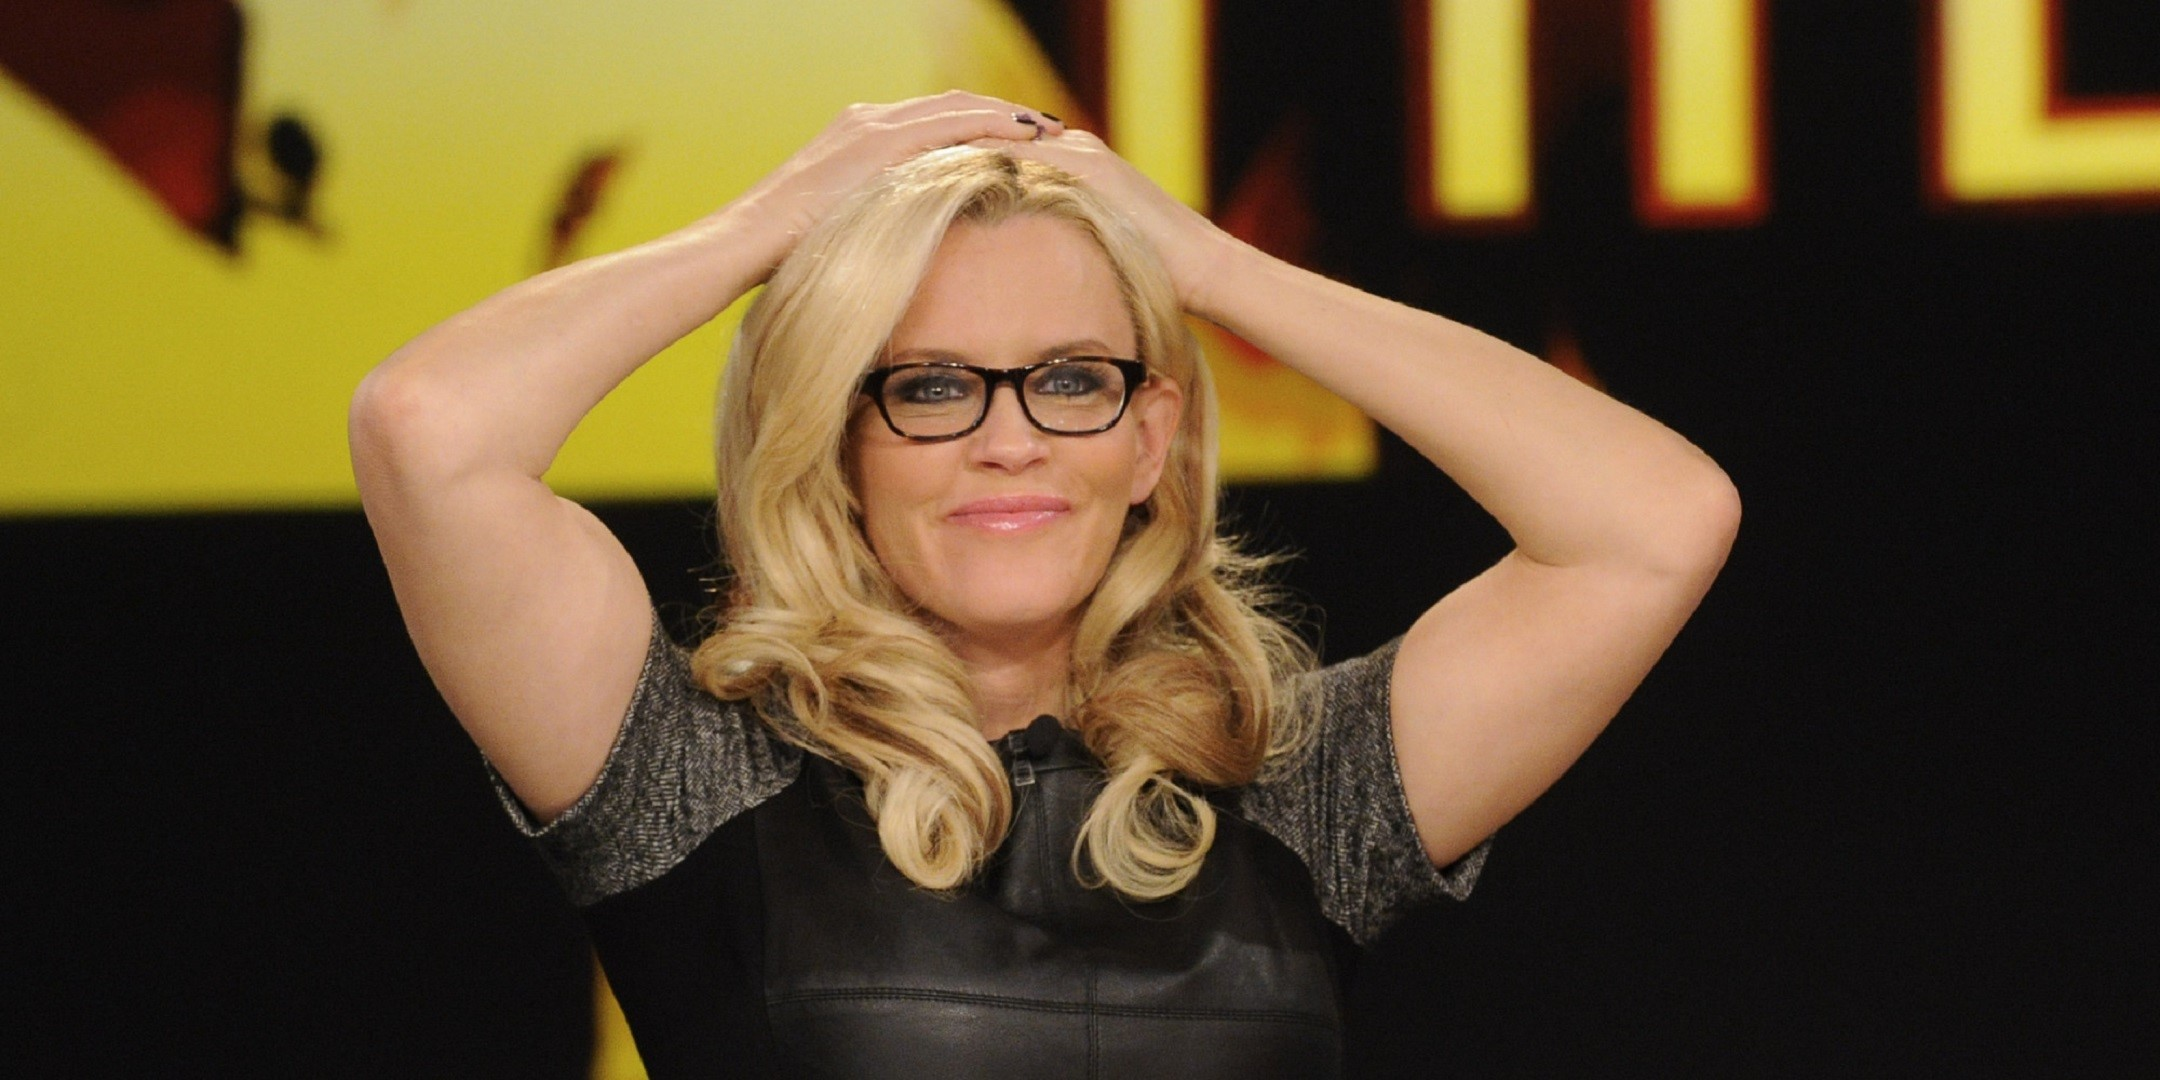 Jenny Mccarthy Wallpapers And Backgrounds